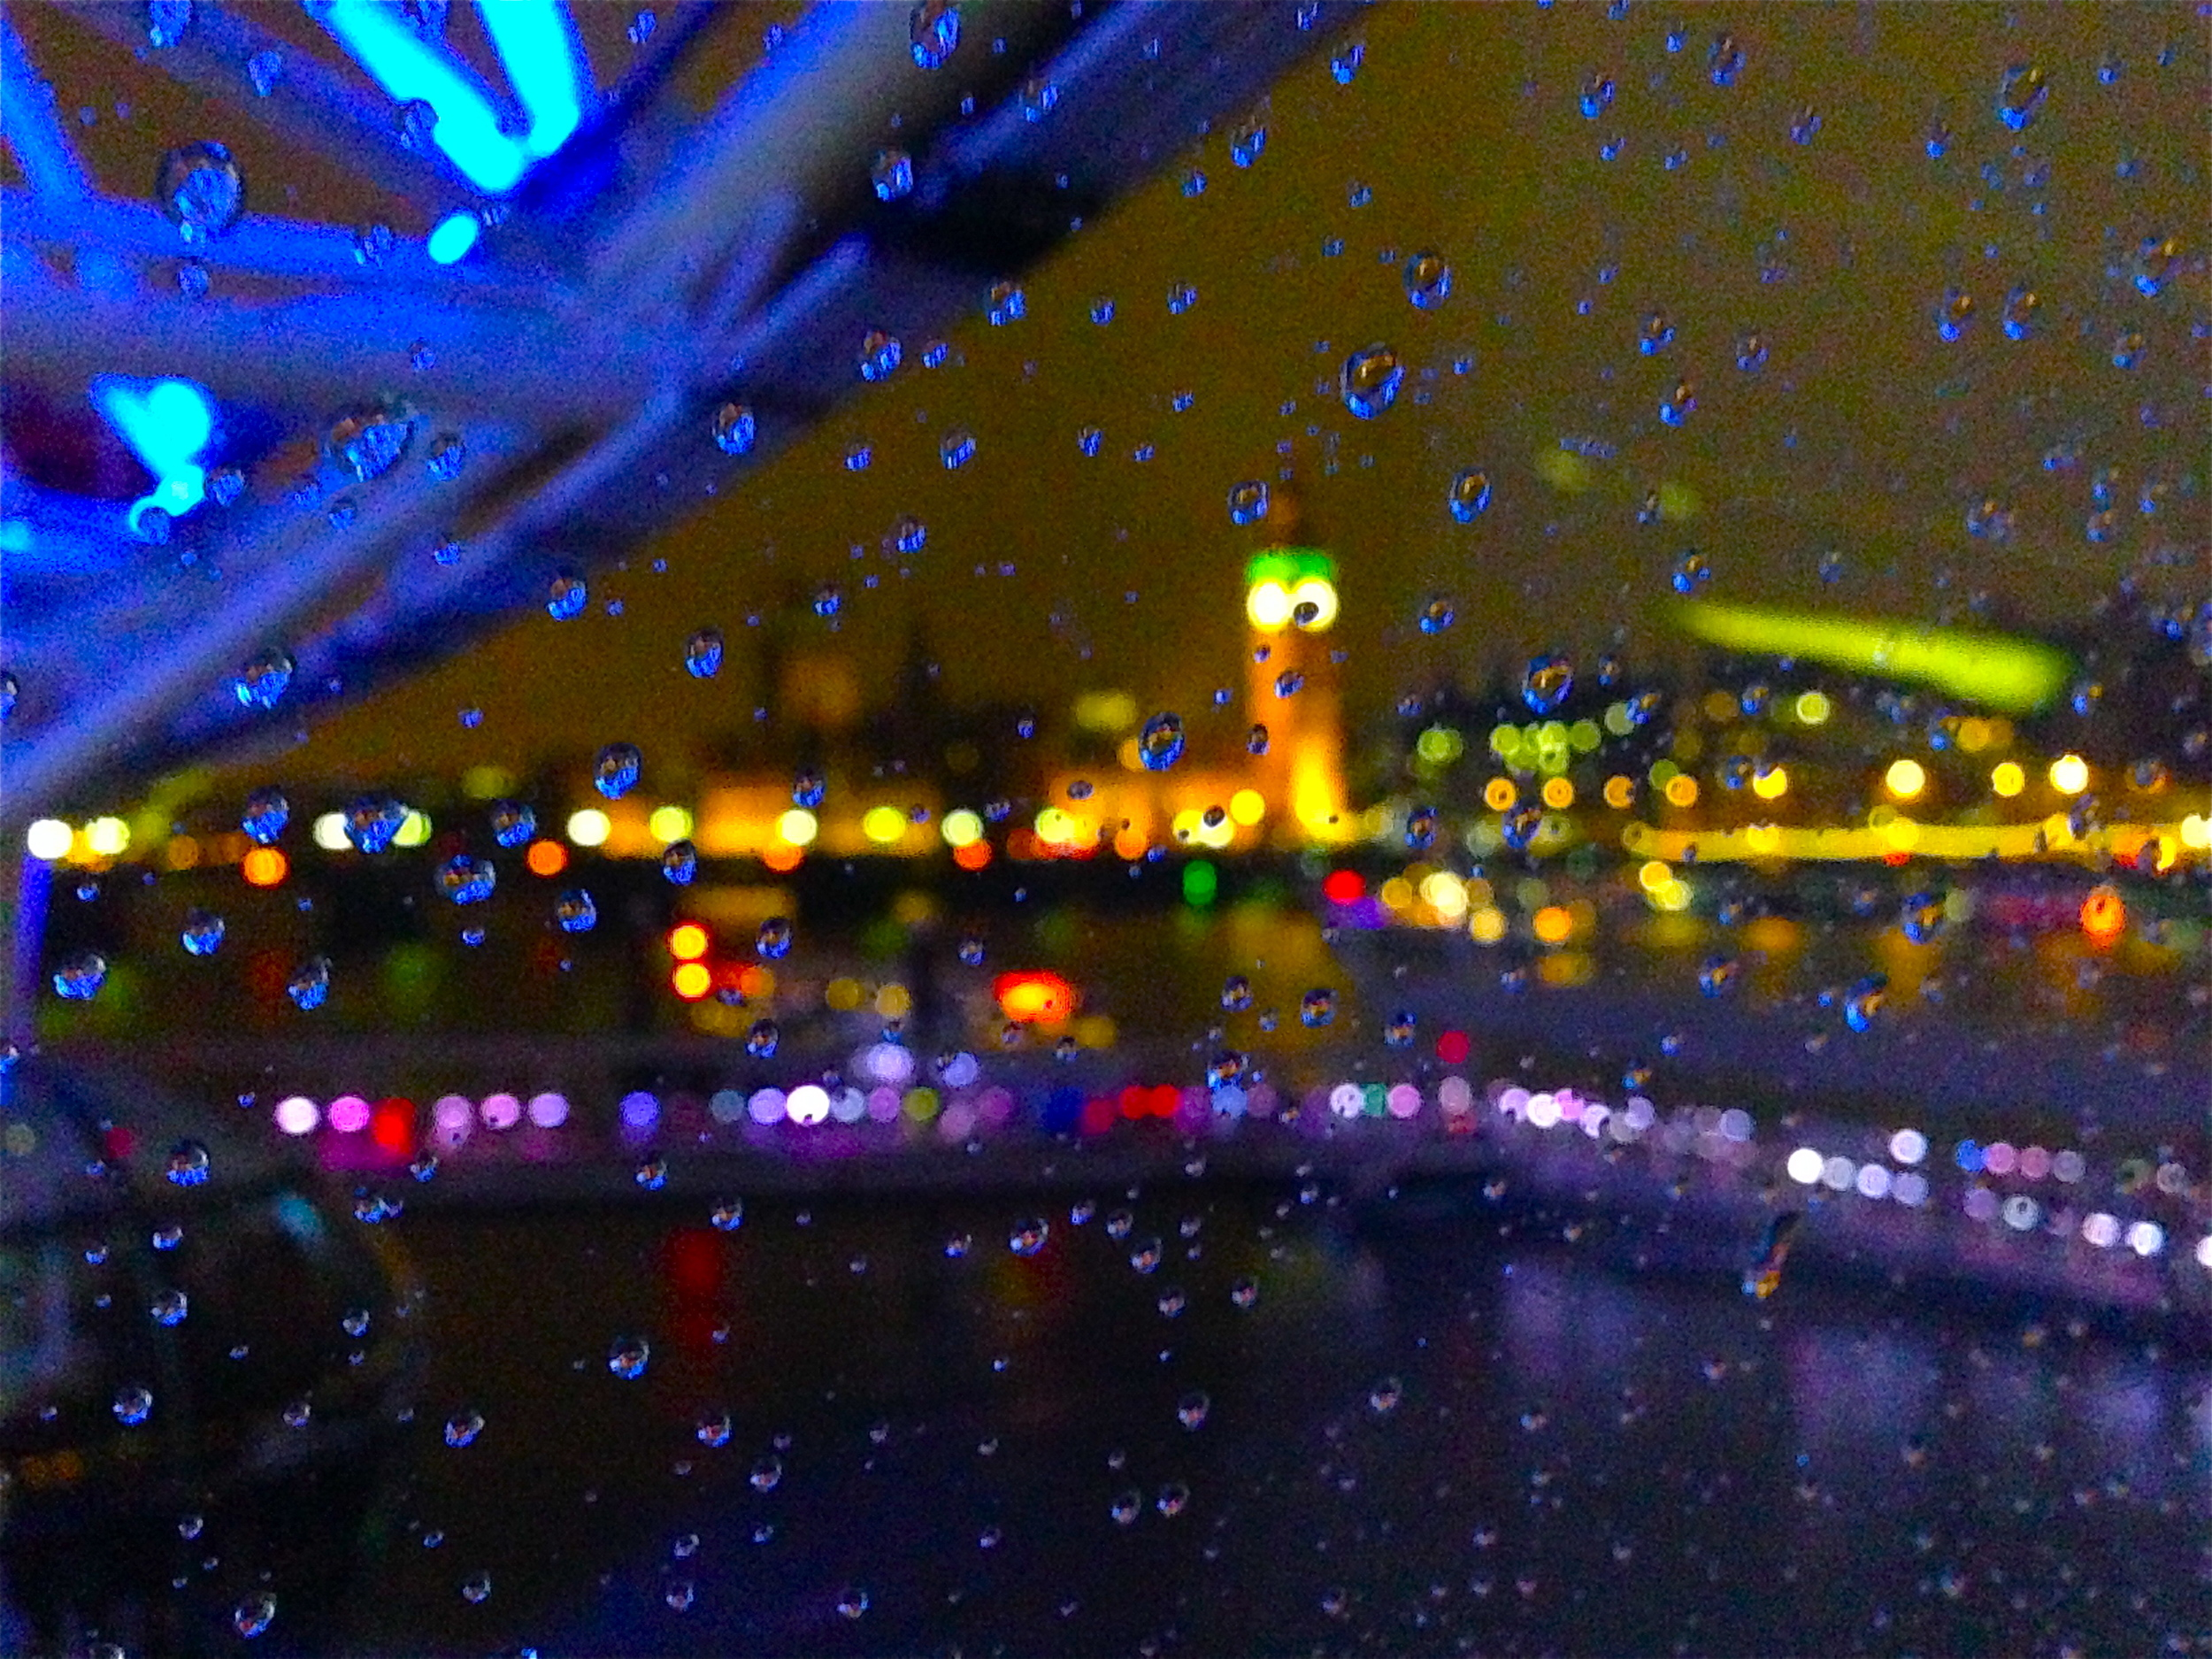 Kaci Nicole - Rainy View from the London Eye